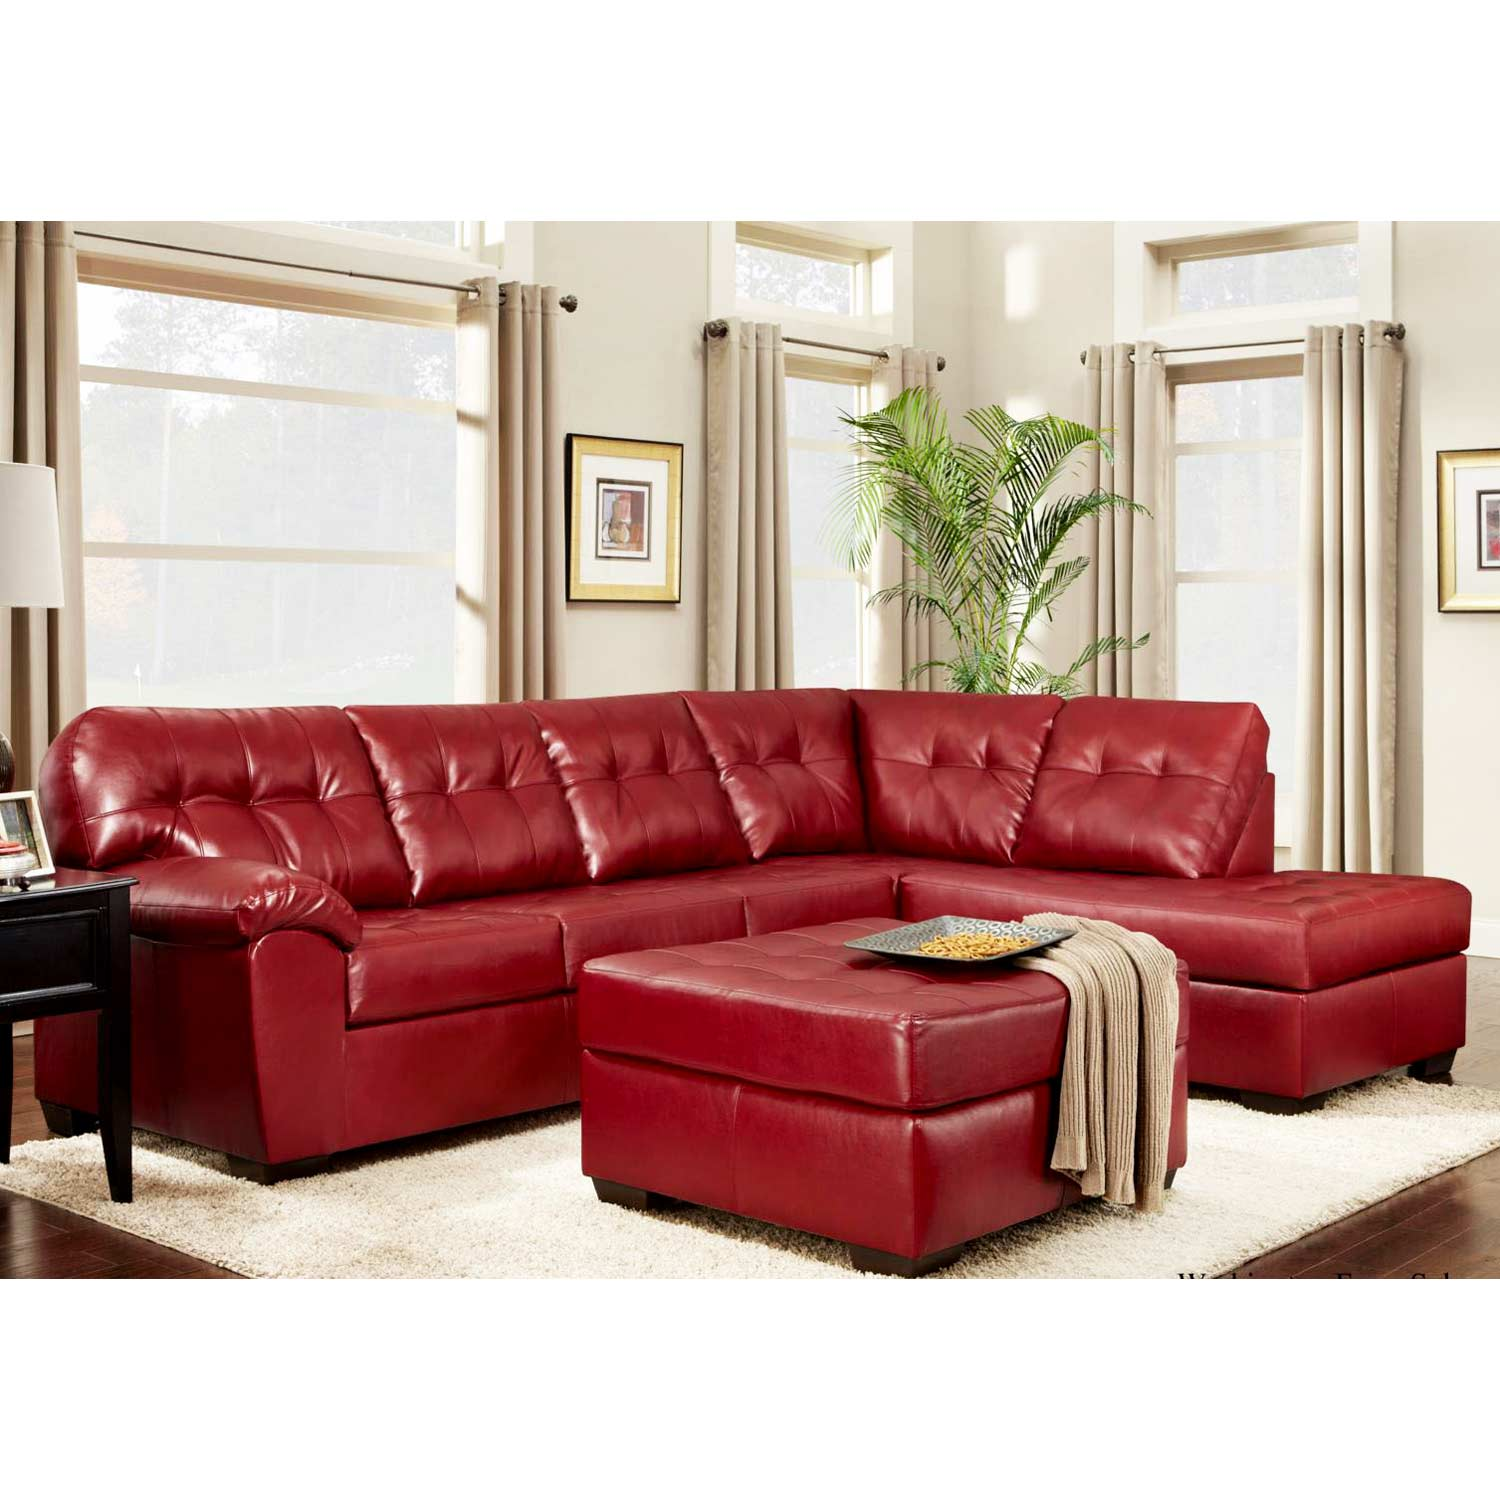 Rachel Tufted Chaise Sectional - Contempo Red Upholstery